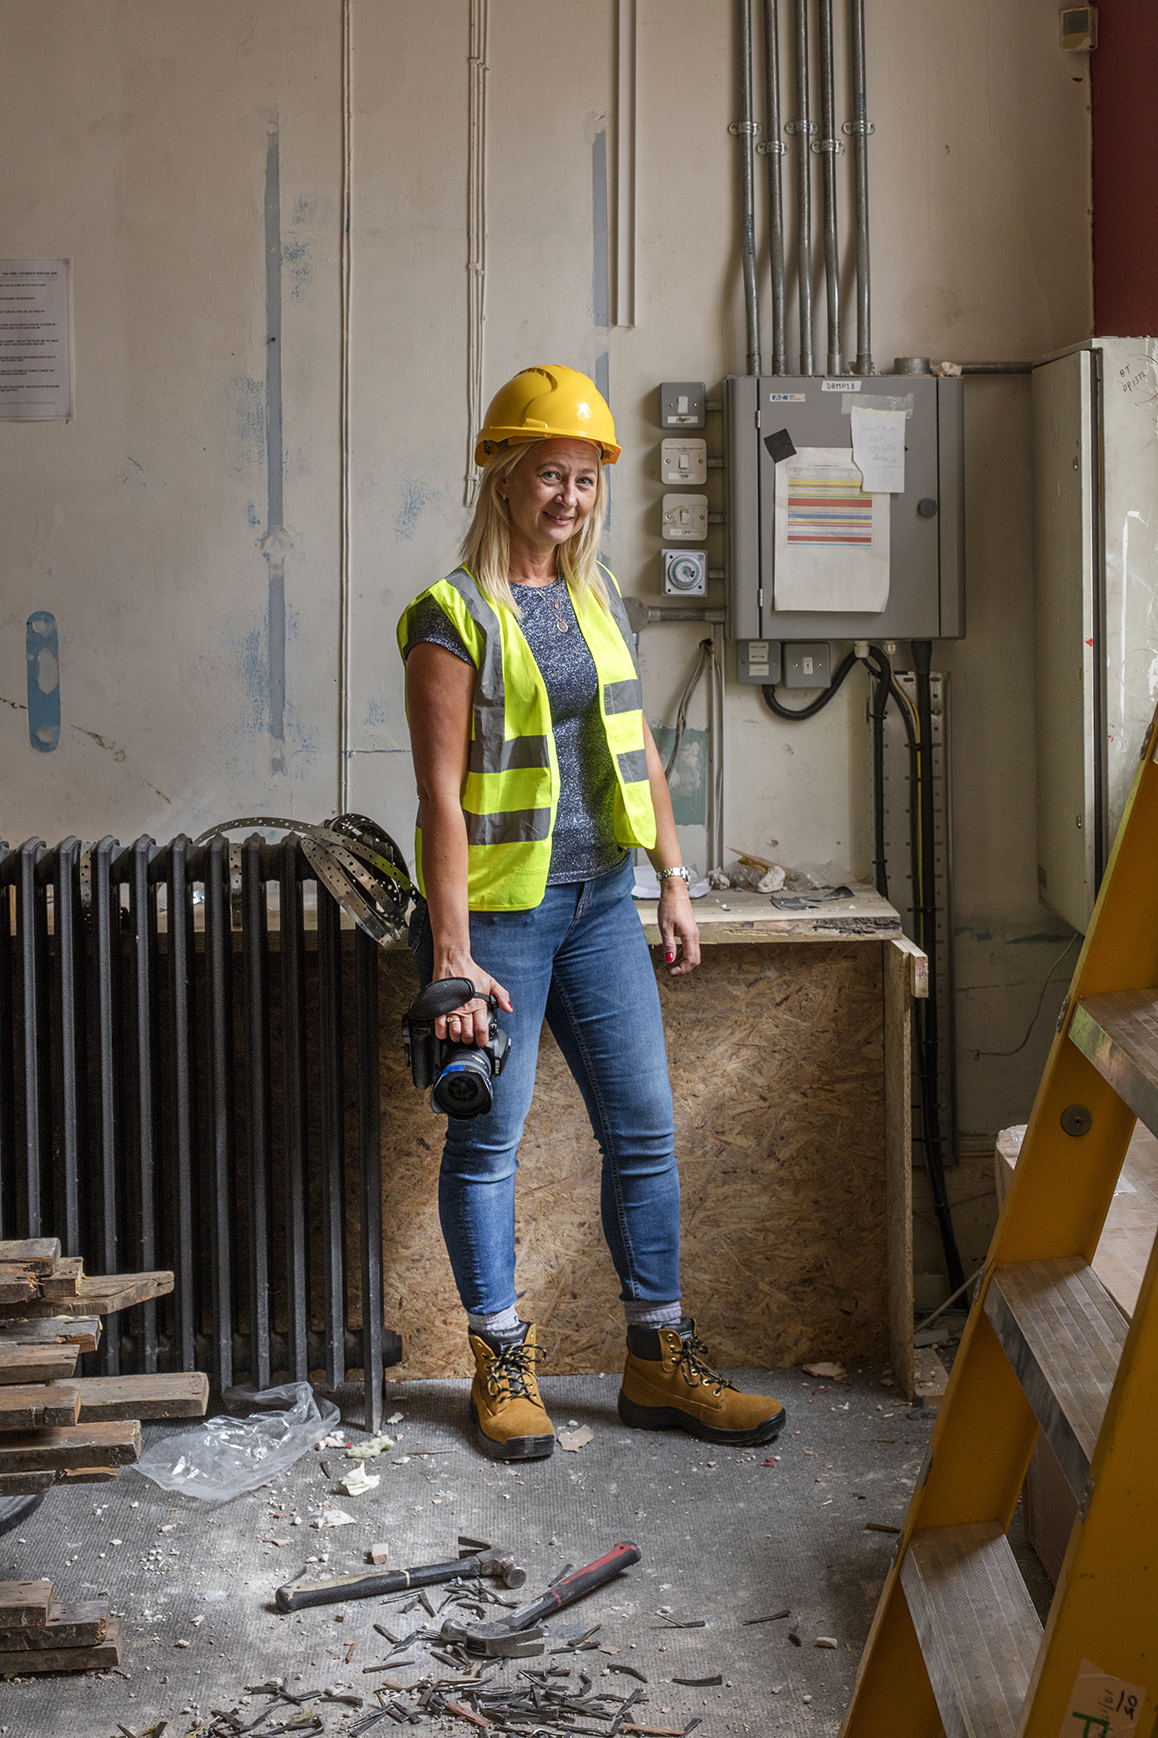 Supporting Women In Construction - Sarah Toon